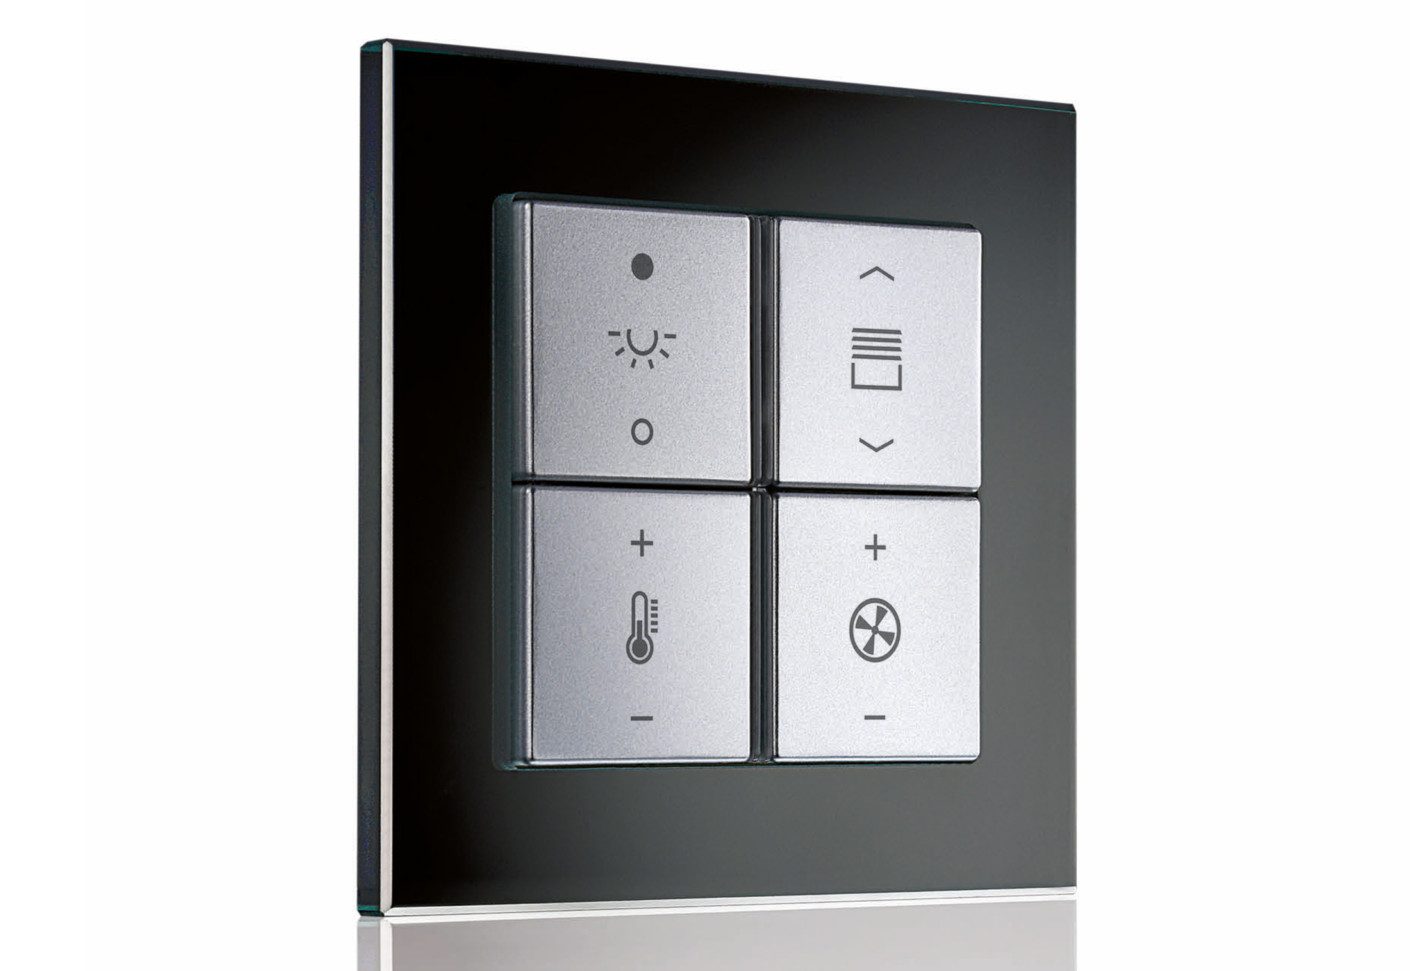 knx push button sensors f 40 universal by jung stylepark. Black Bedroom Furniture Sets. Home Design Ideas